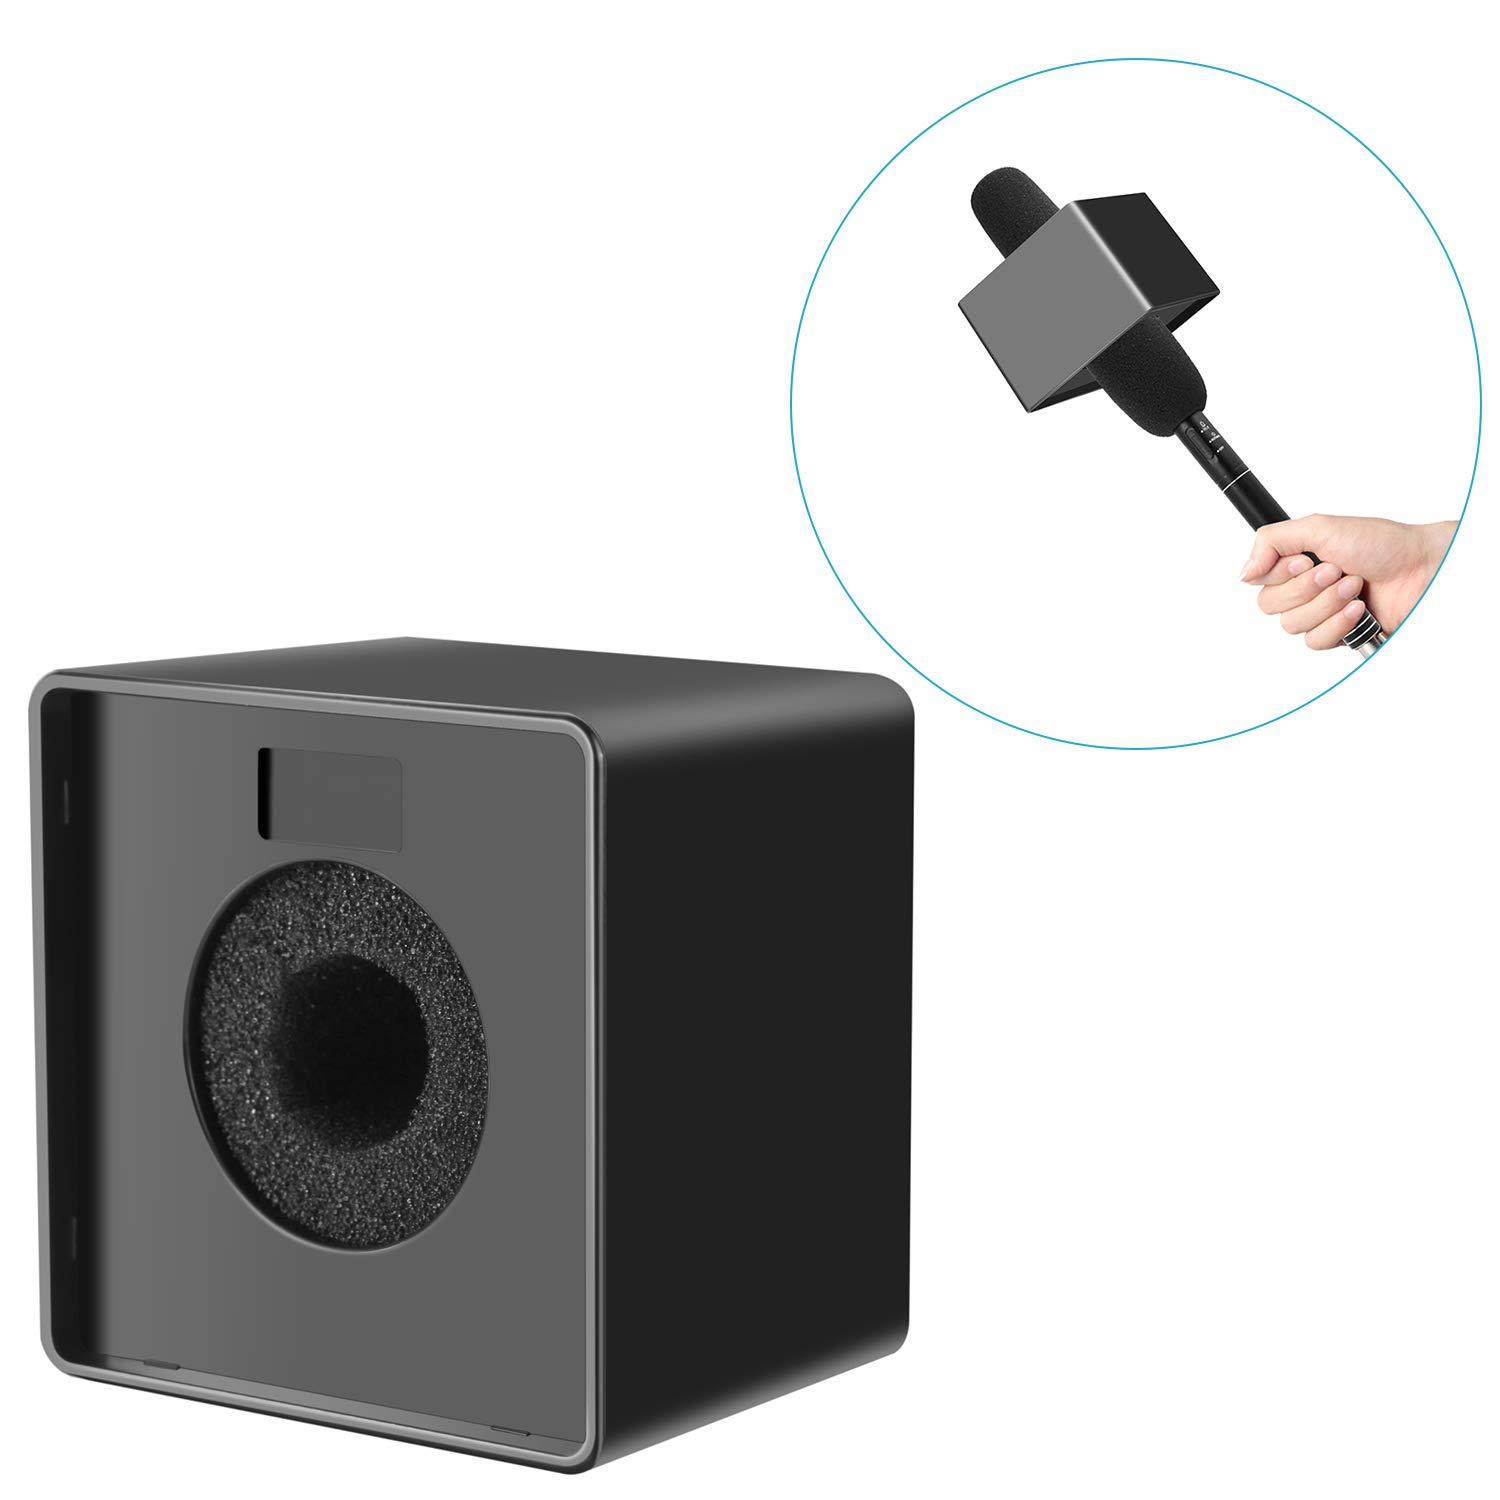 Neewer Portable Square Cube Shaped Interview Mic Microphone Flag Station Logo with Max. 1.57 inches/4cm Hole, Black 40093738